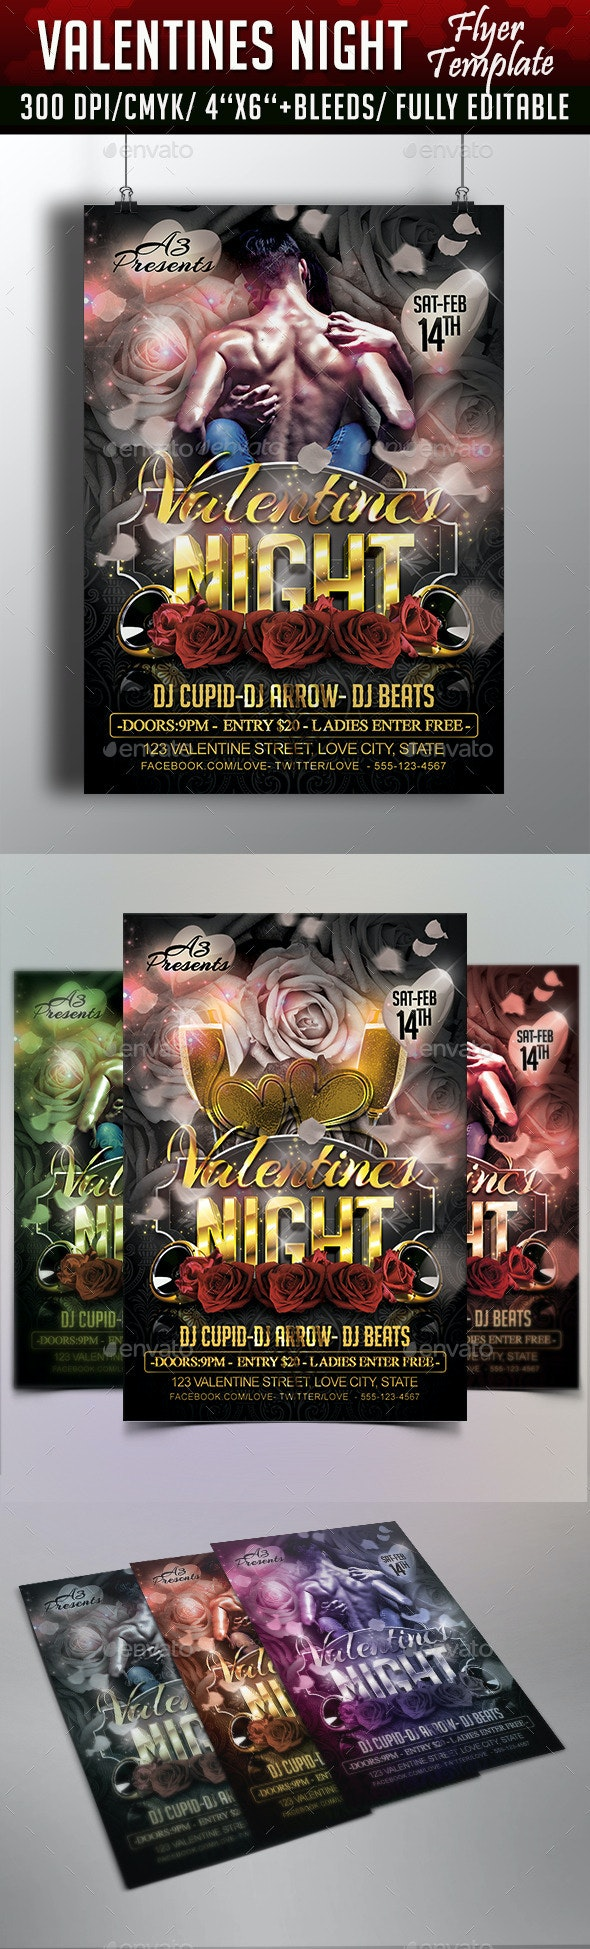 Valentines Night Flyer Template - Flyers Print Templates